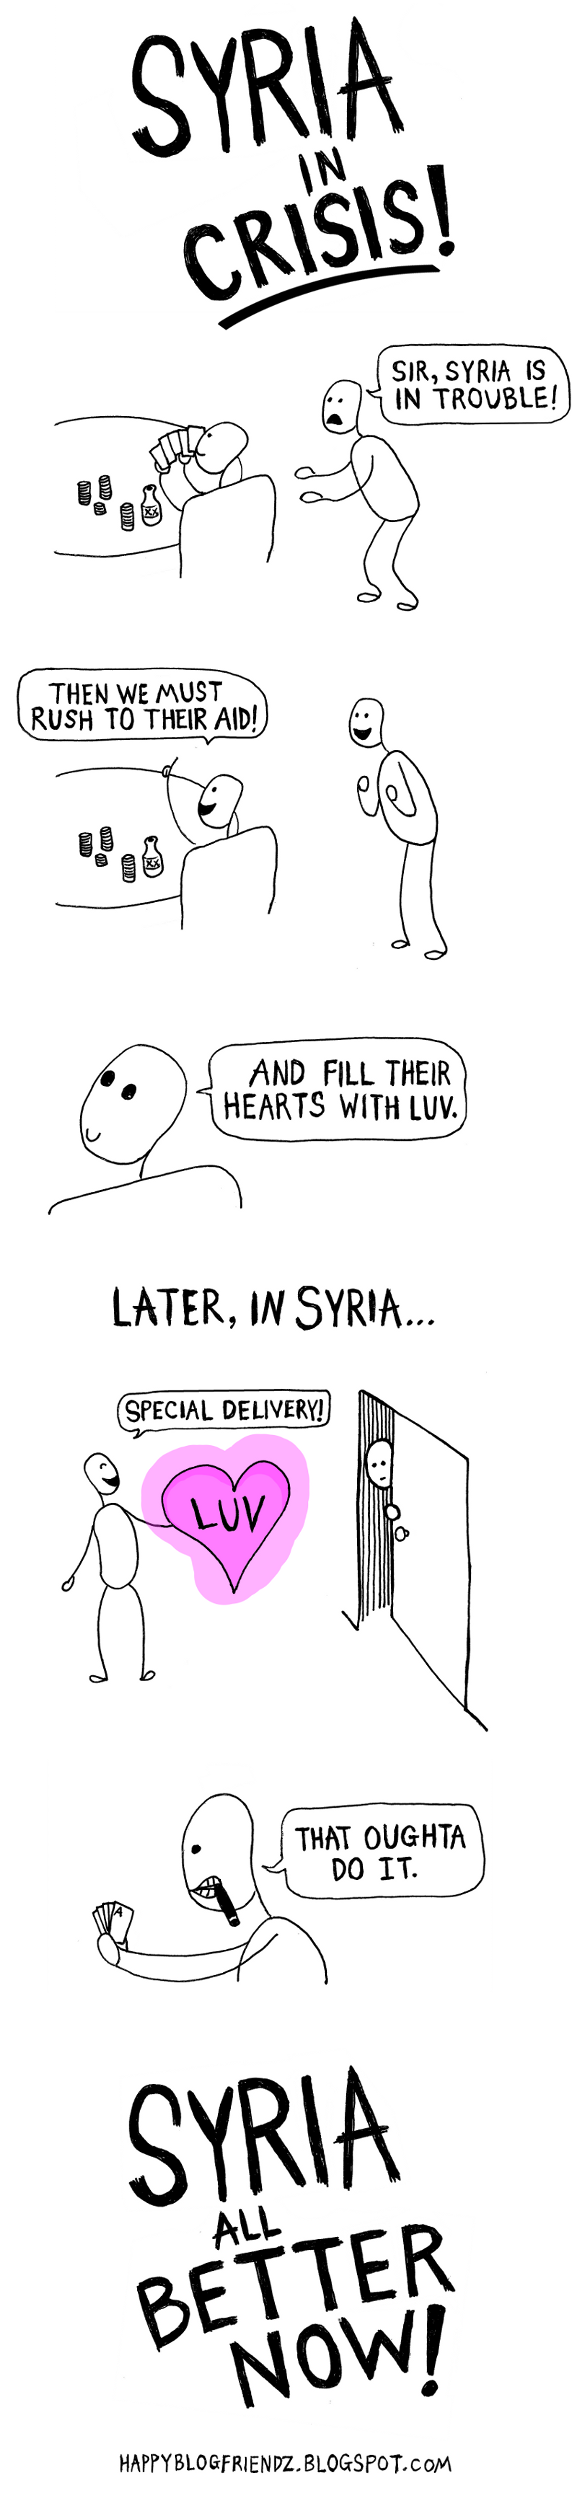 Syria in Crisis